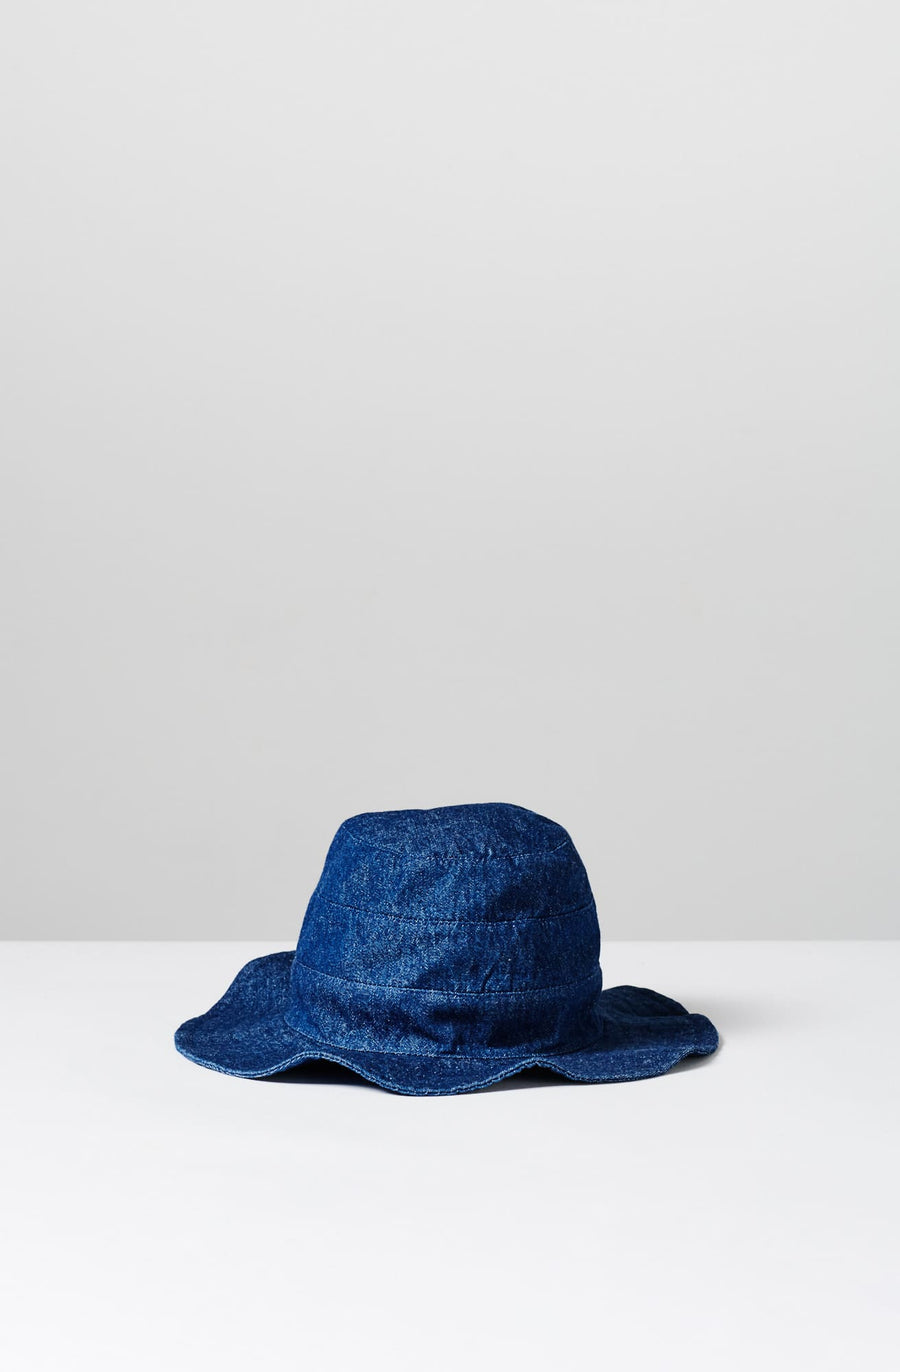 Washed Denim Hat-washed indigo denim